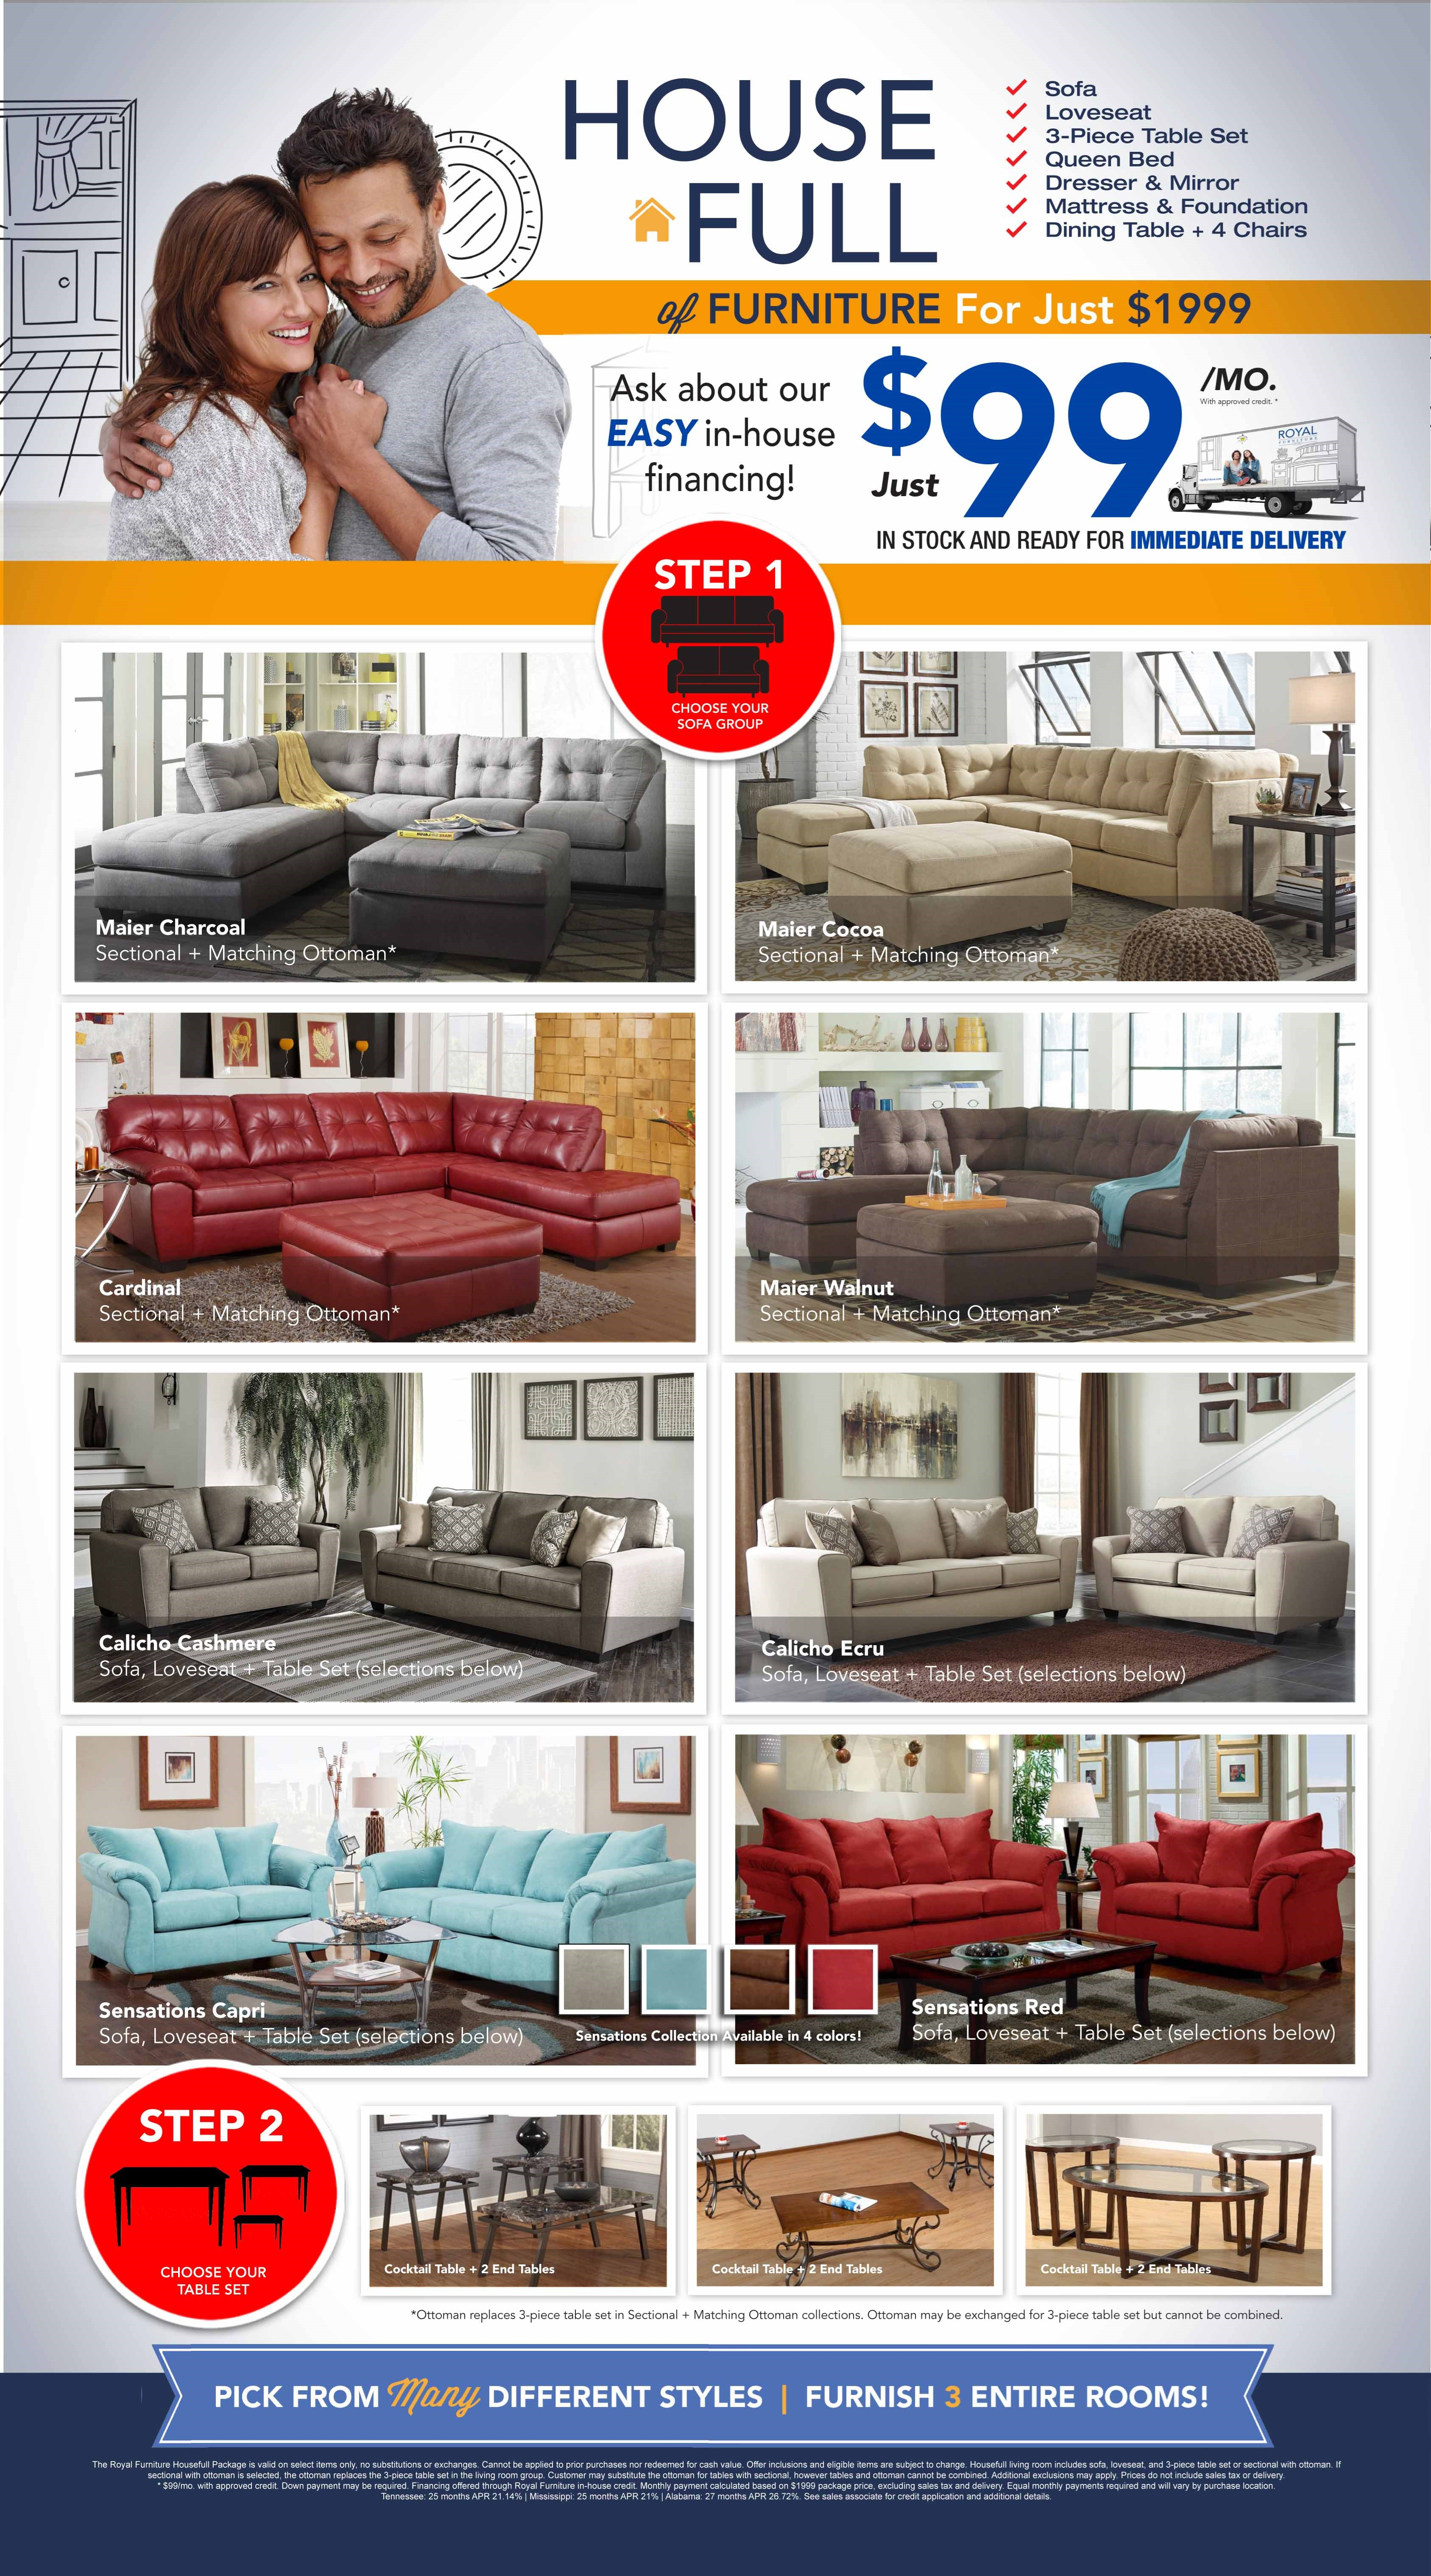 House Full Furniture Package